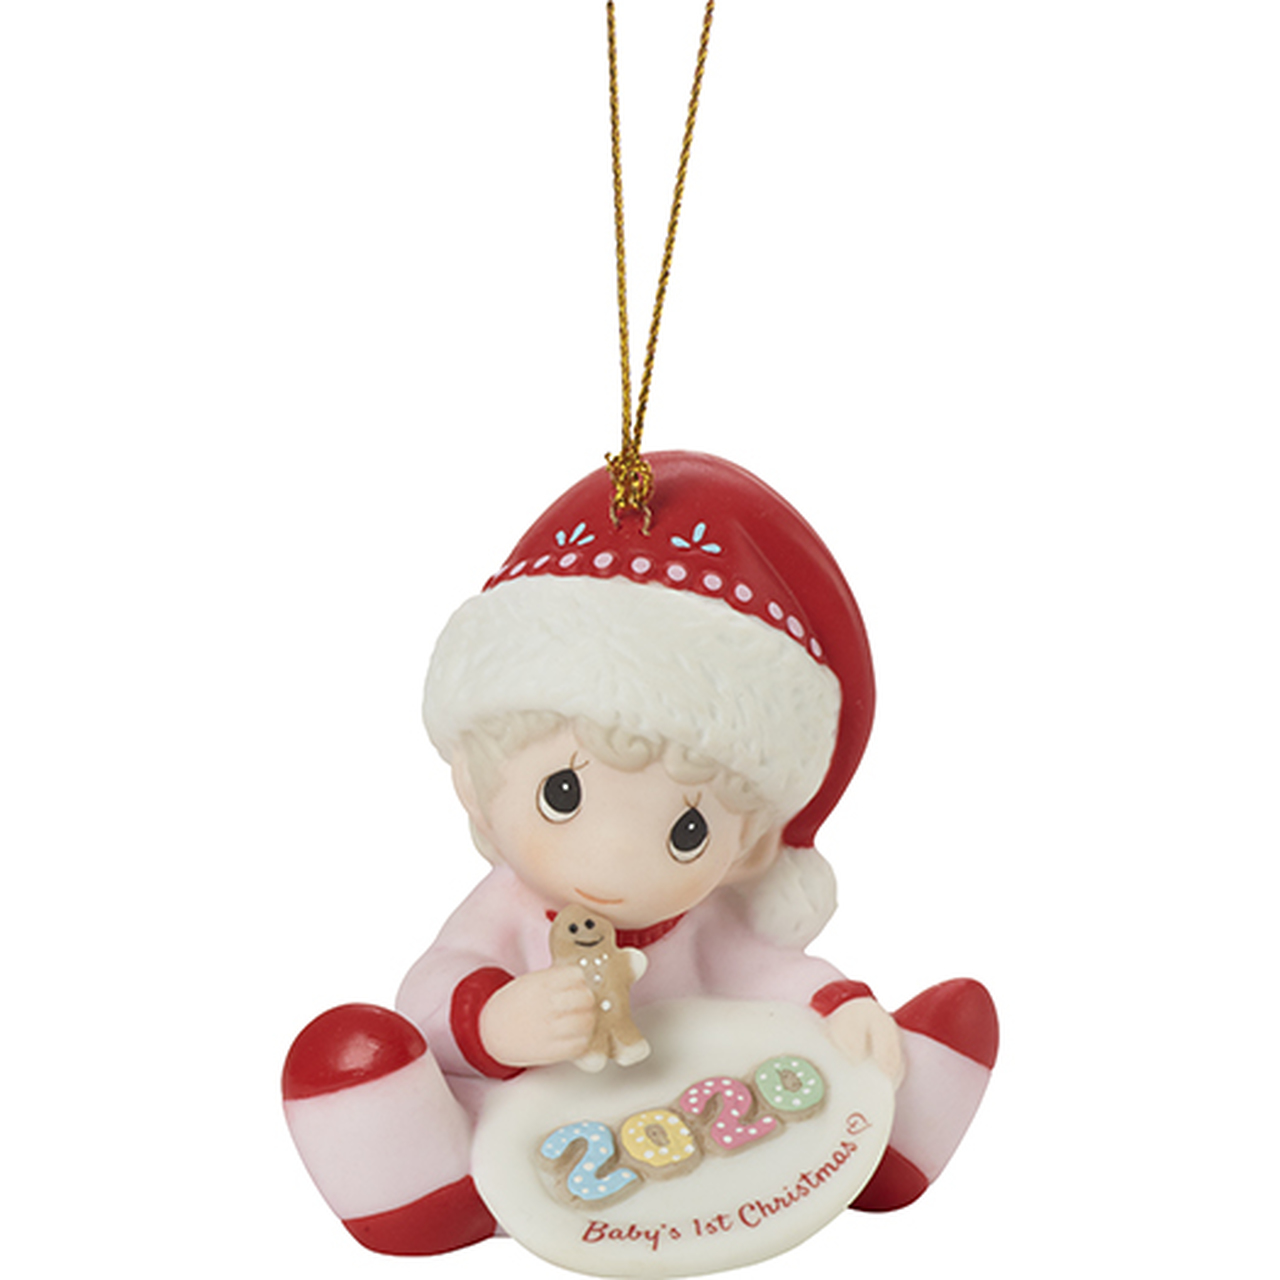 My First Christmas Ornament 2020 2020 Baby's First Christmas, Girl   Dated Precious Moments